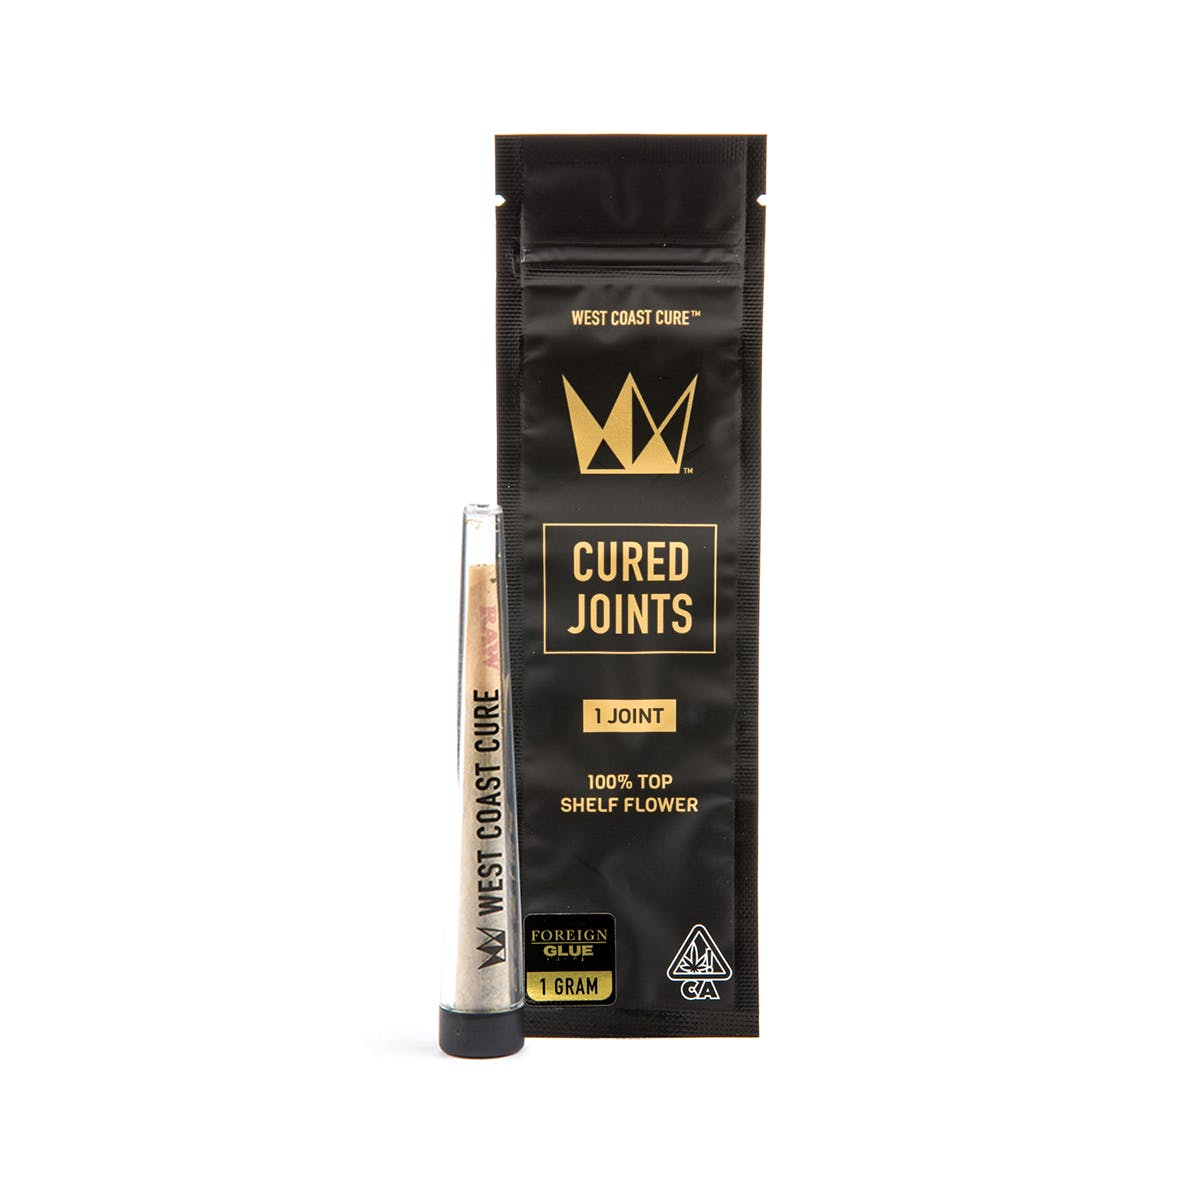 marijuana-dispensaries-eastlake-greens-collective-in-chula-vista-cured-joint-foreign-glue